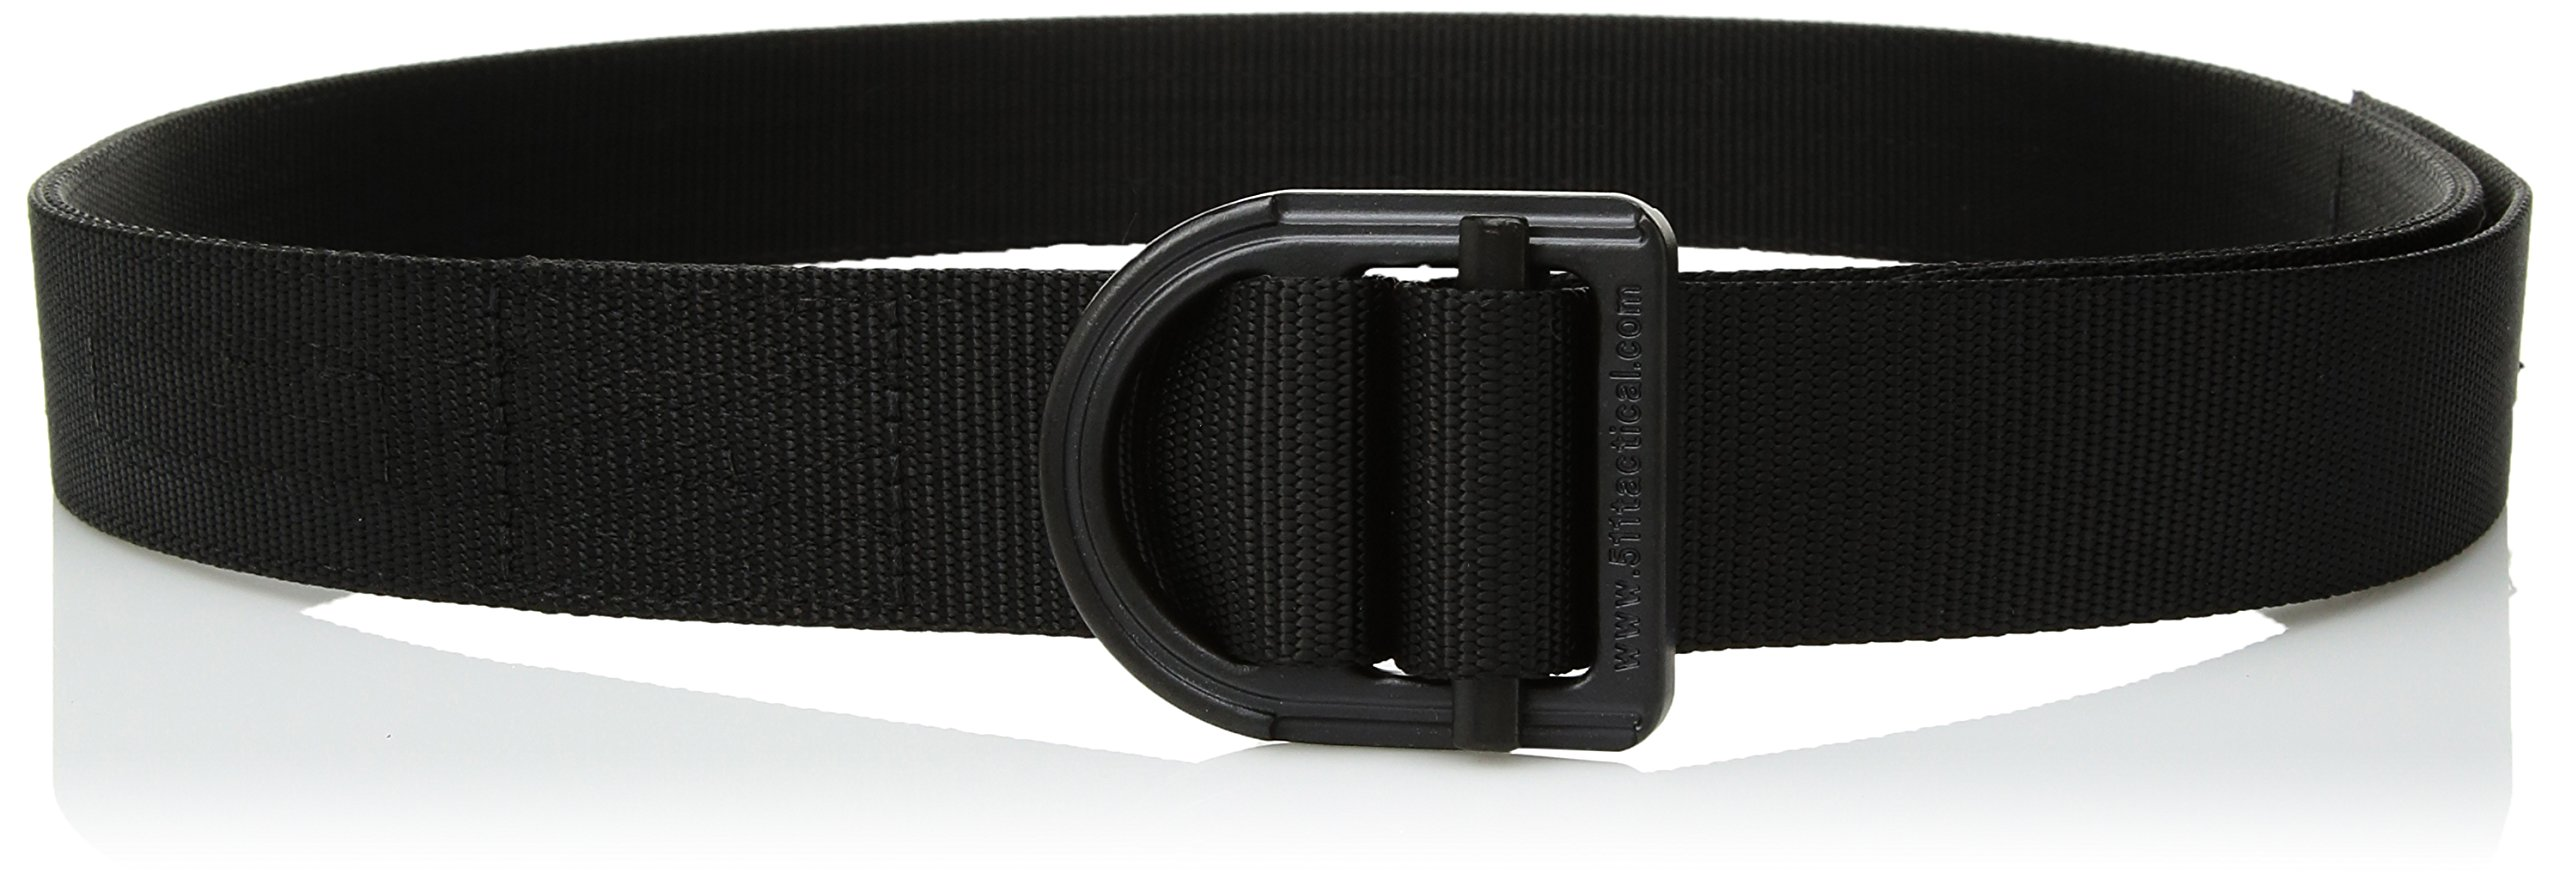 5.11 Tactical Trainer Belt, Heavy Duty for Military and Law Enforcement, 1.5-Inch, Style 59409